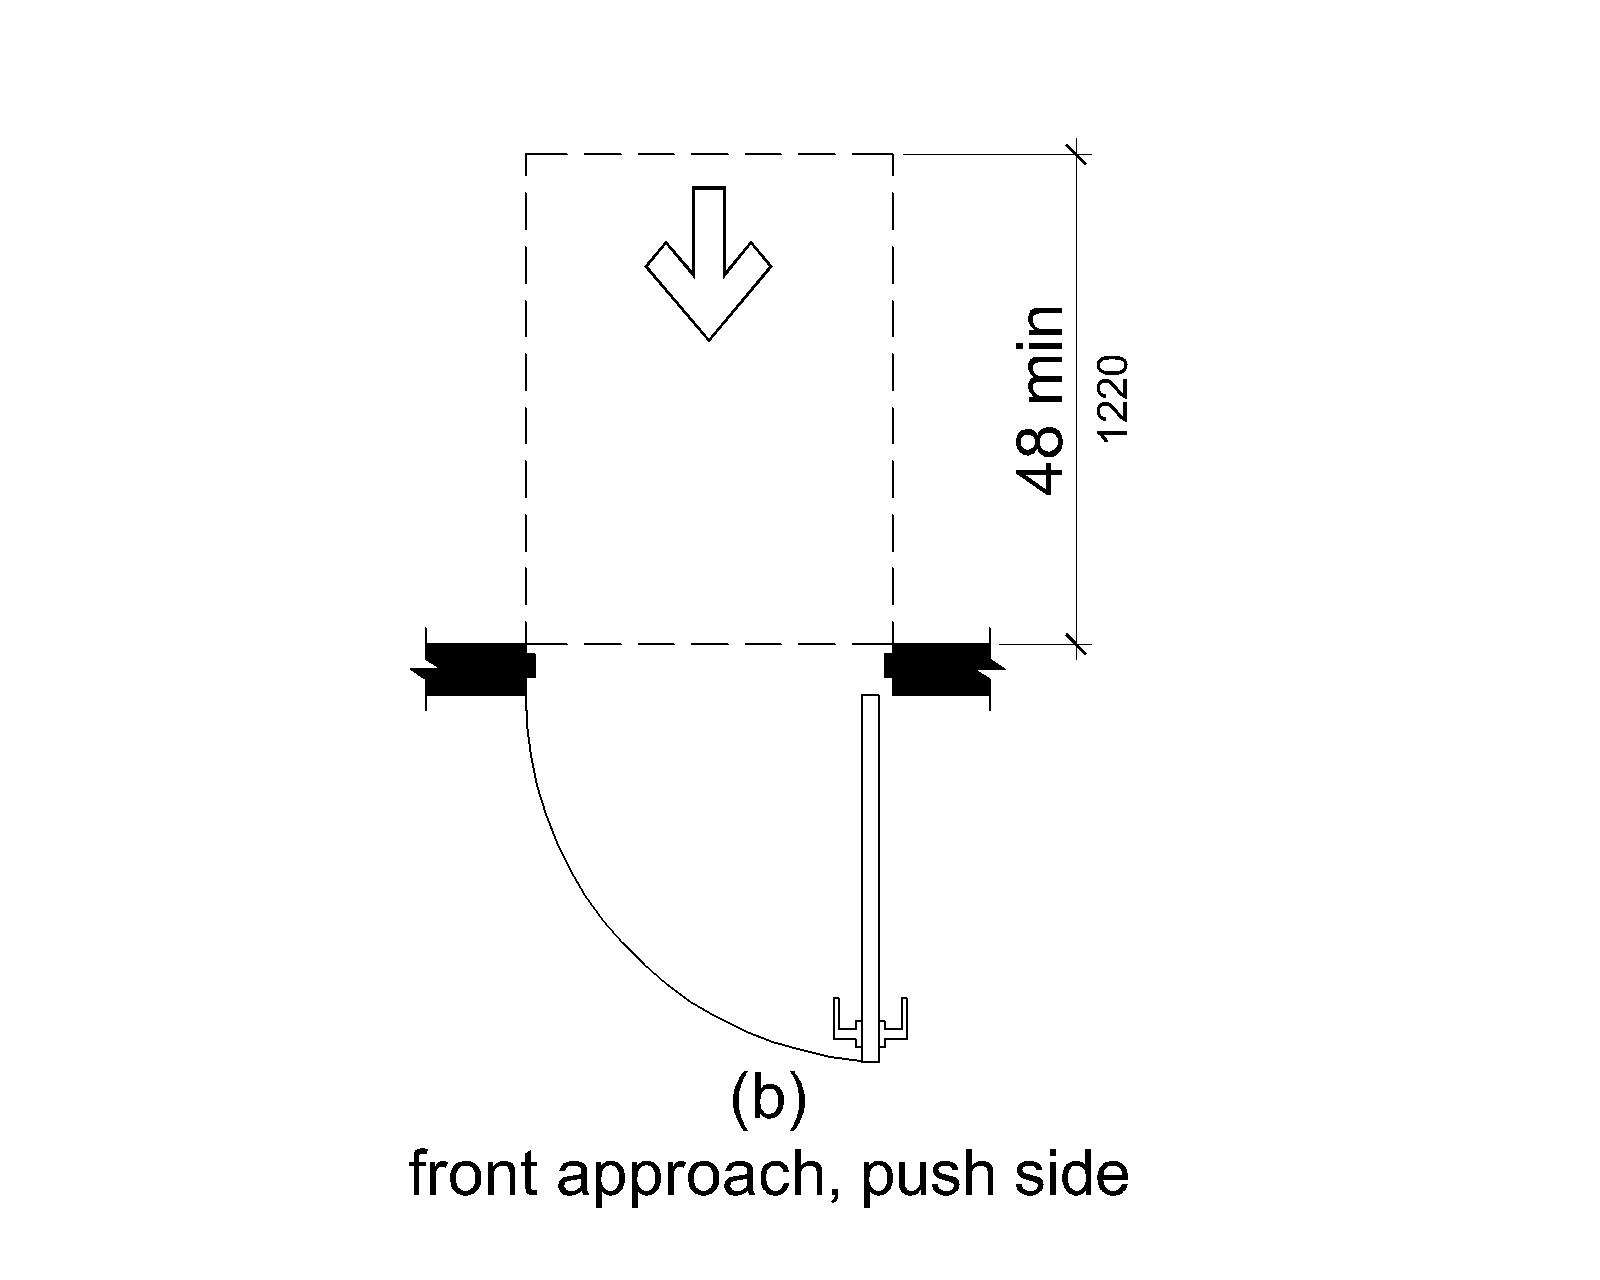 (b) On the push side of doors not equipped with a closer or latch, the maneuvering space is the same width as the door opening and extends 48 inches (1220 mm) minimum perpendicular to the doorway.